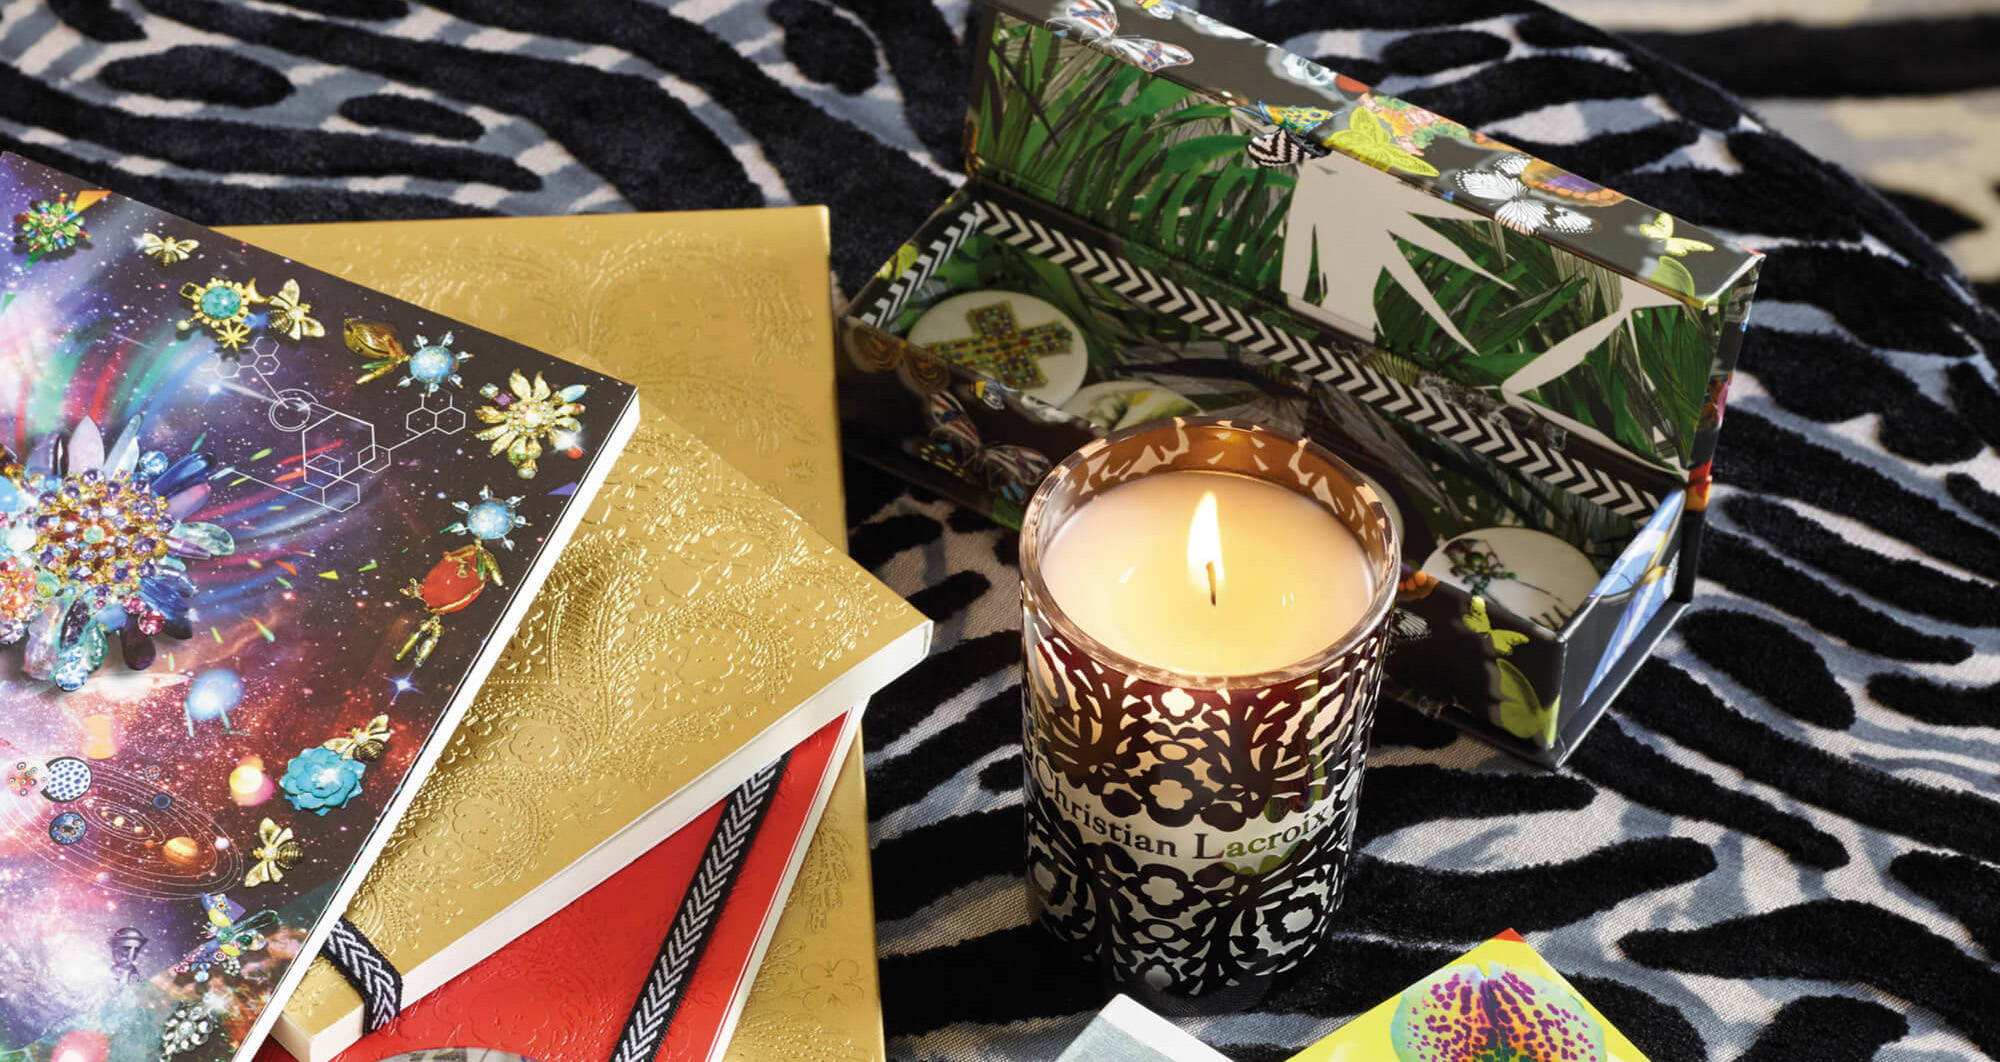 christian lacroix scented candle limited edition capsule collaboration couture fashion best interior design accessory